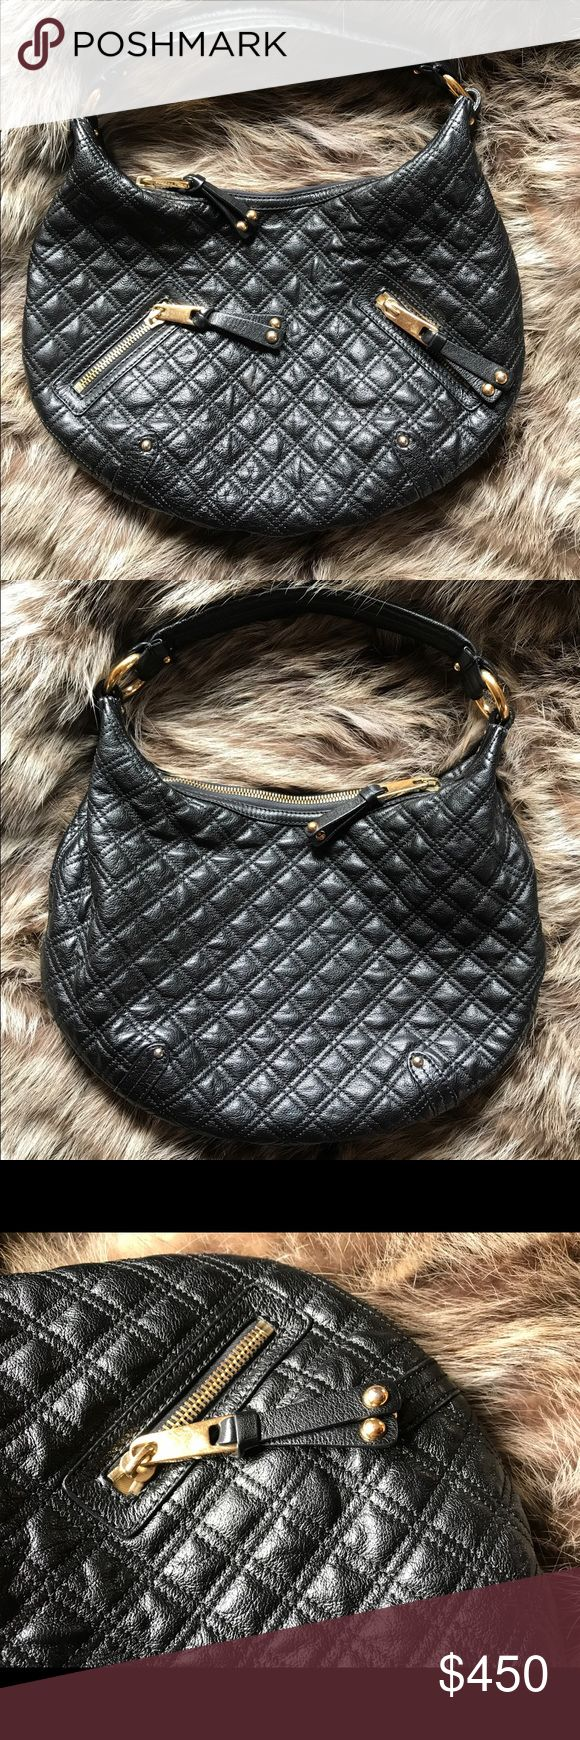 MARC JACOBS QUILTED SHOULDER BAG MARC JACOBS QUILTED SHOULDER BAG. NOT SURE IF I WANT TO SELL ONLY TRADE FOR A LV, NF MAYBE. Marc Jacobs Bags Shoulder Bags